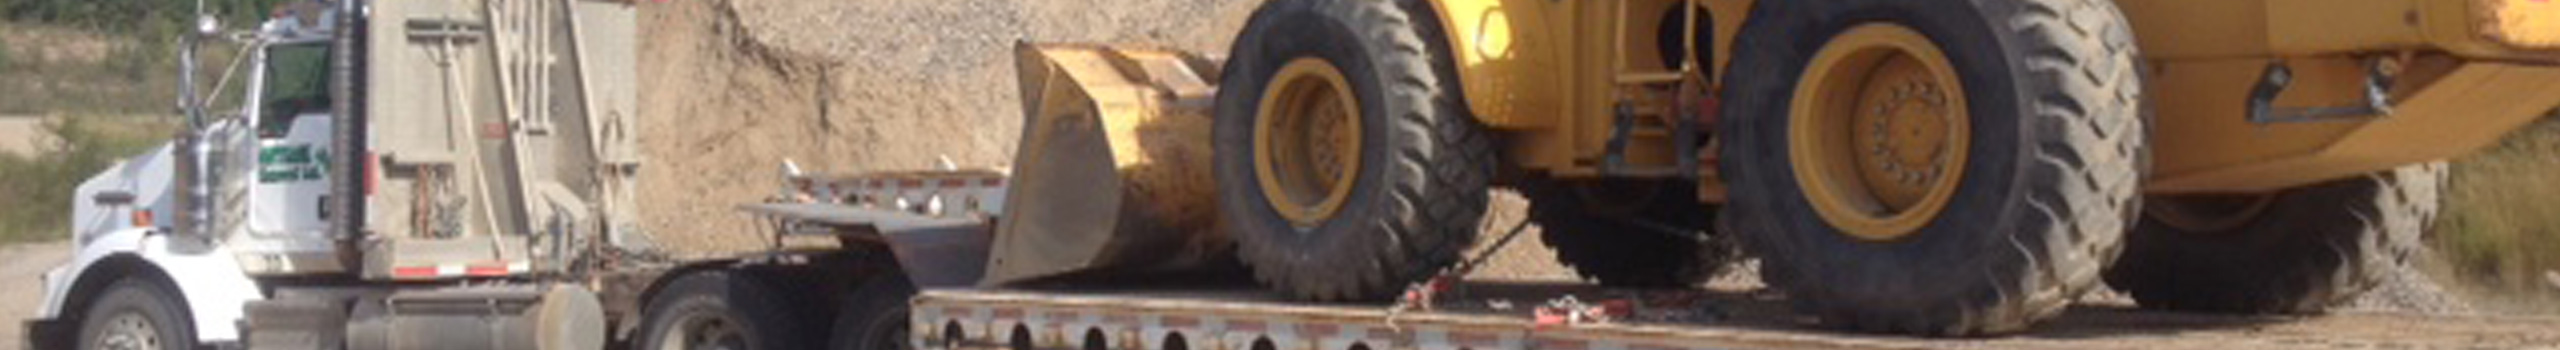 truck trailer equipment